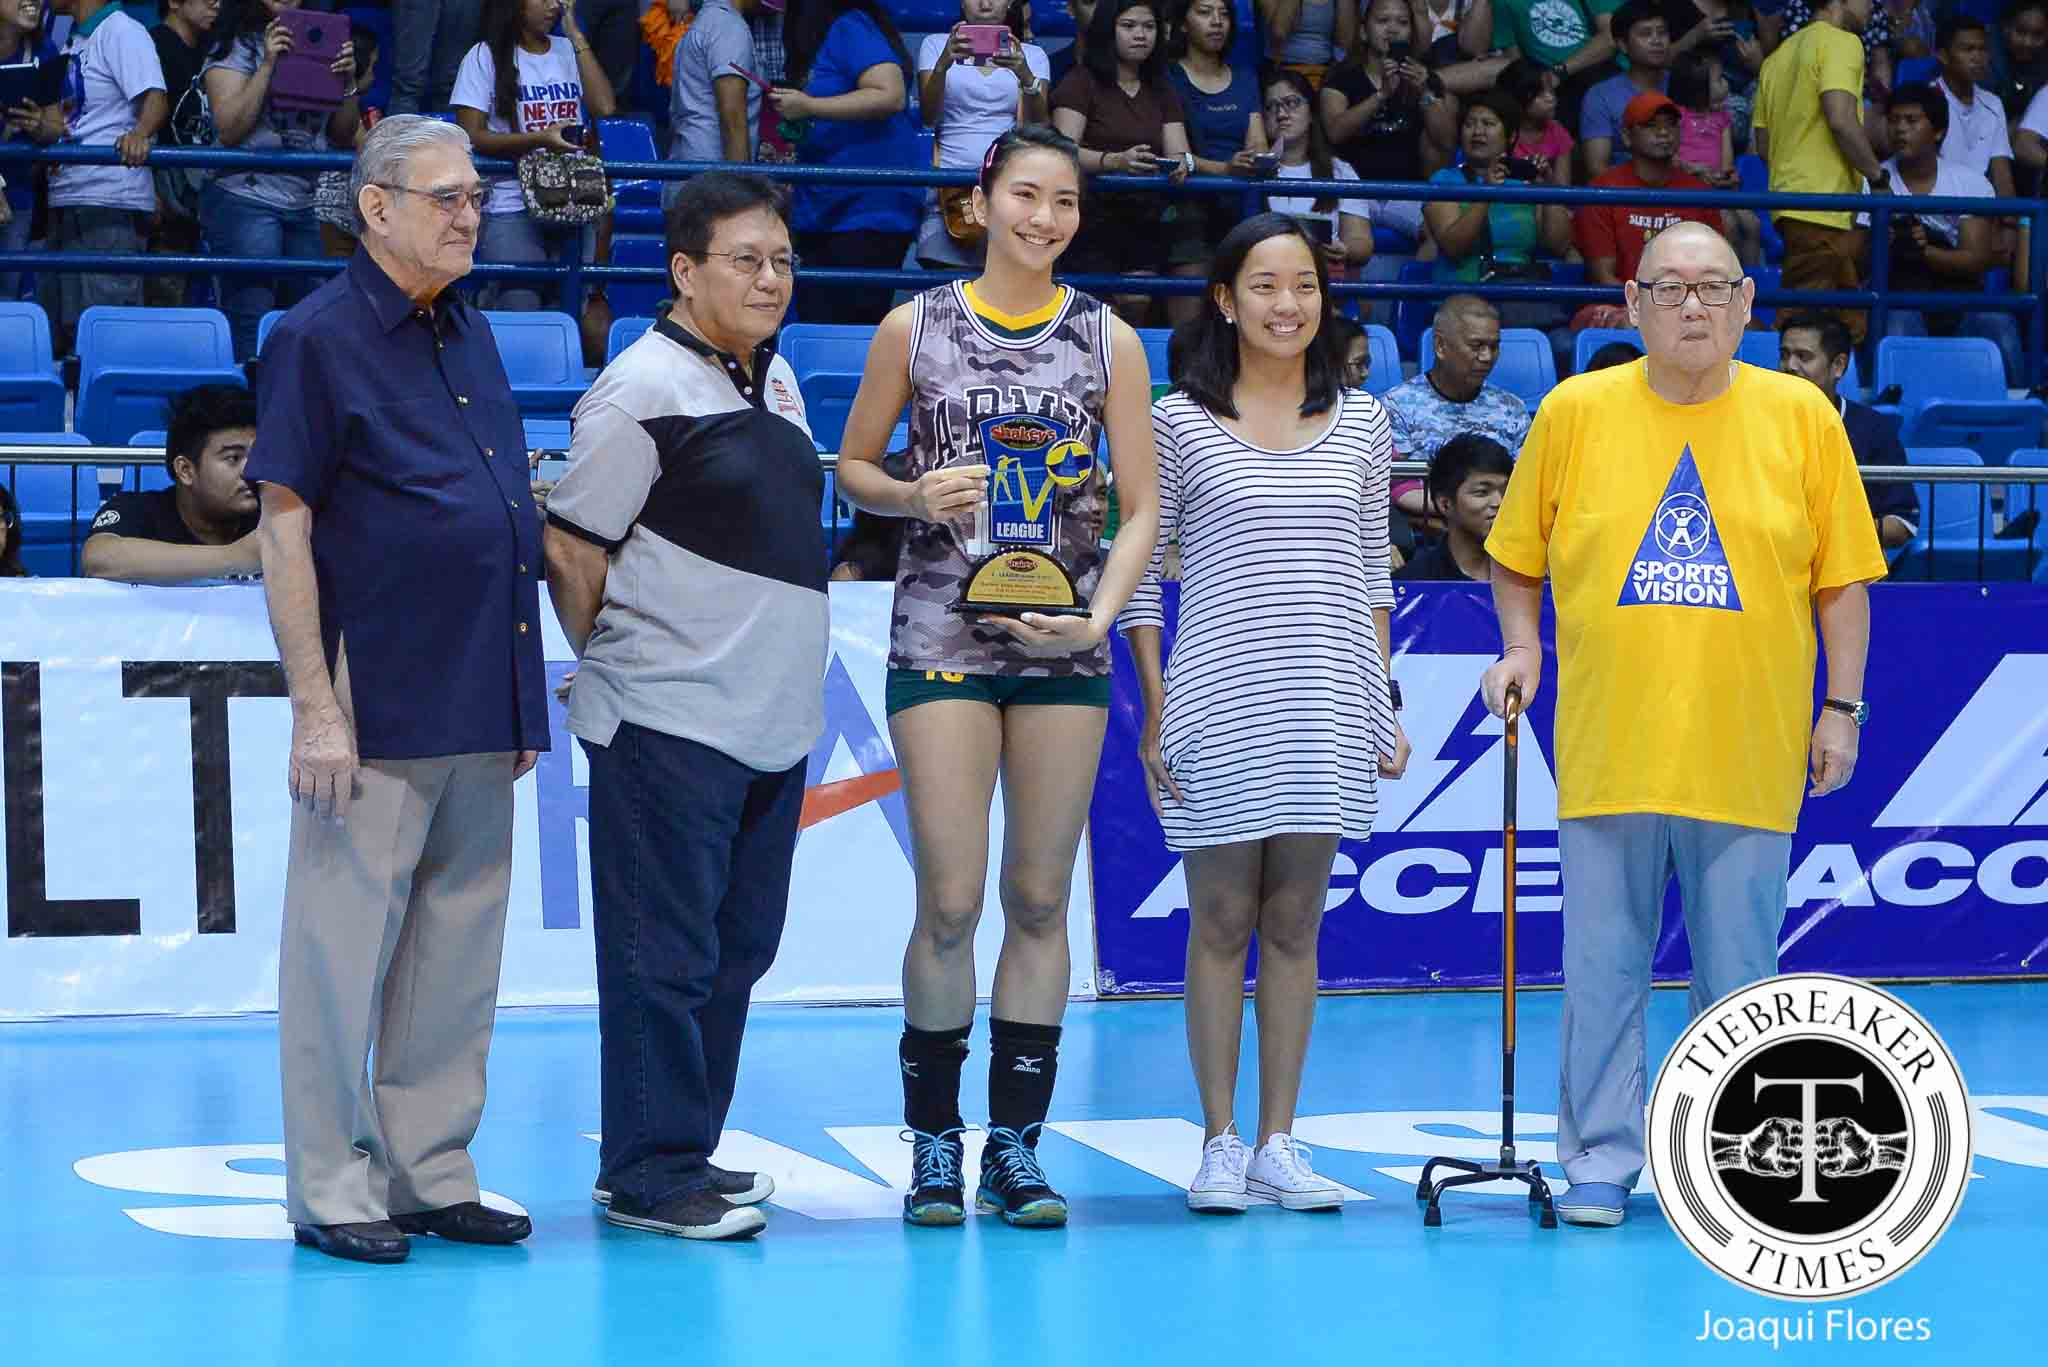 SVL12-Awarding-Daquis-3146 Daquis back home as Cignal officially joins PVL News PVL Volleyball  - philippine sports news